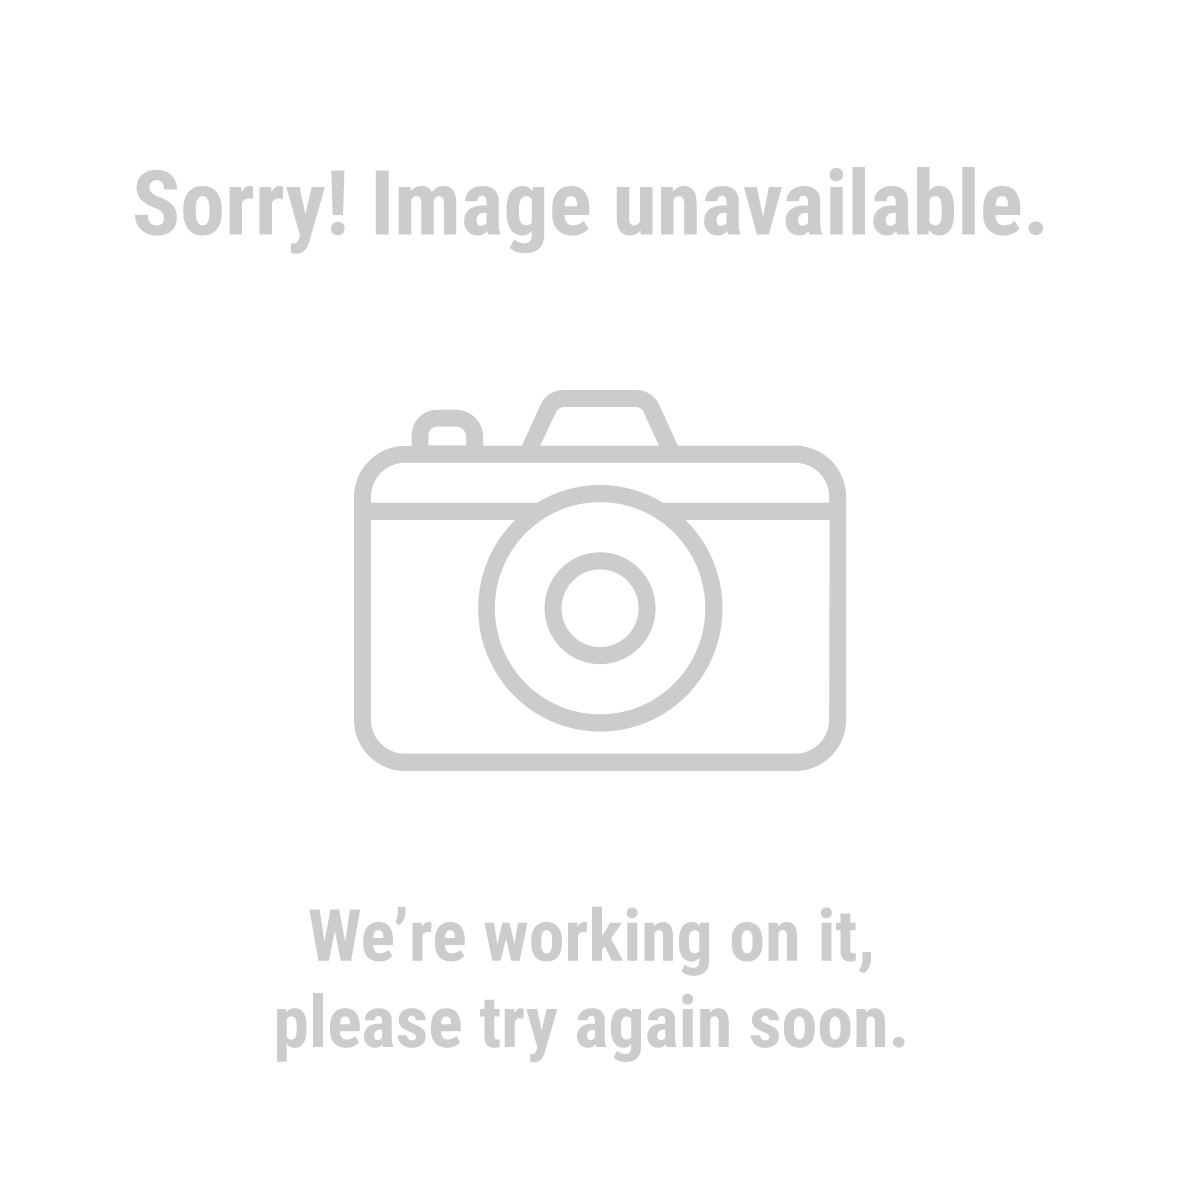 "Pittsburgh 67885 7 Piece 3/8"" SAE Long Ball Head Hex Socket Set"